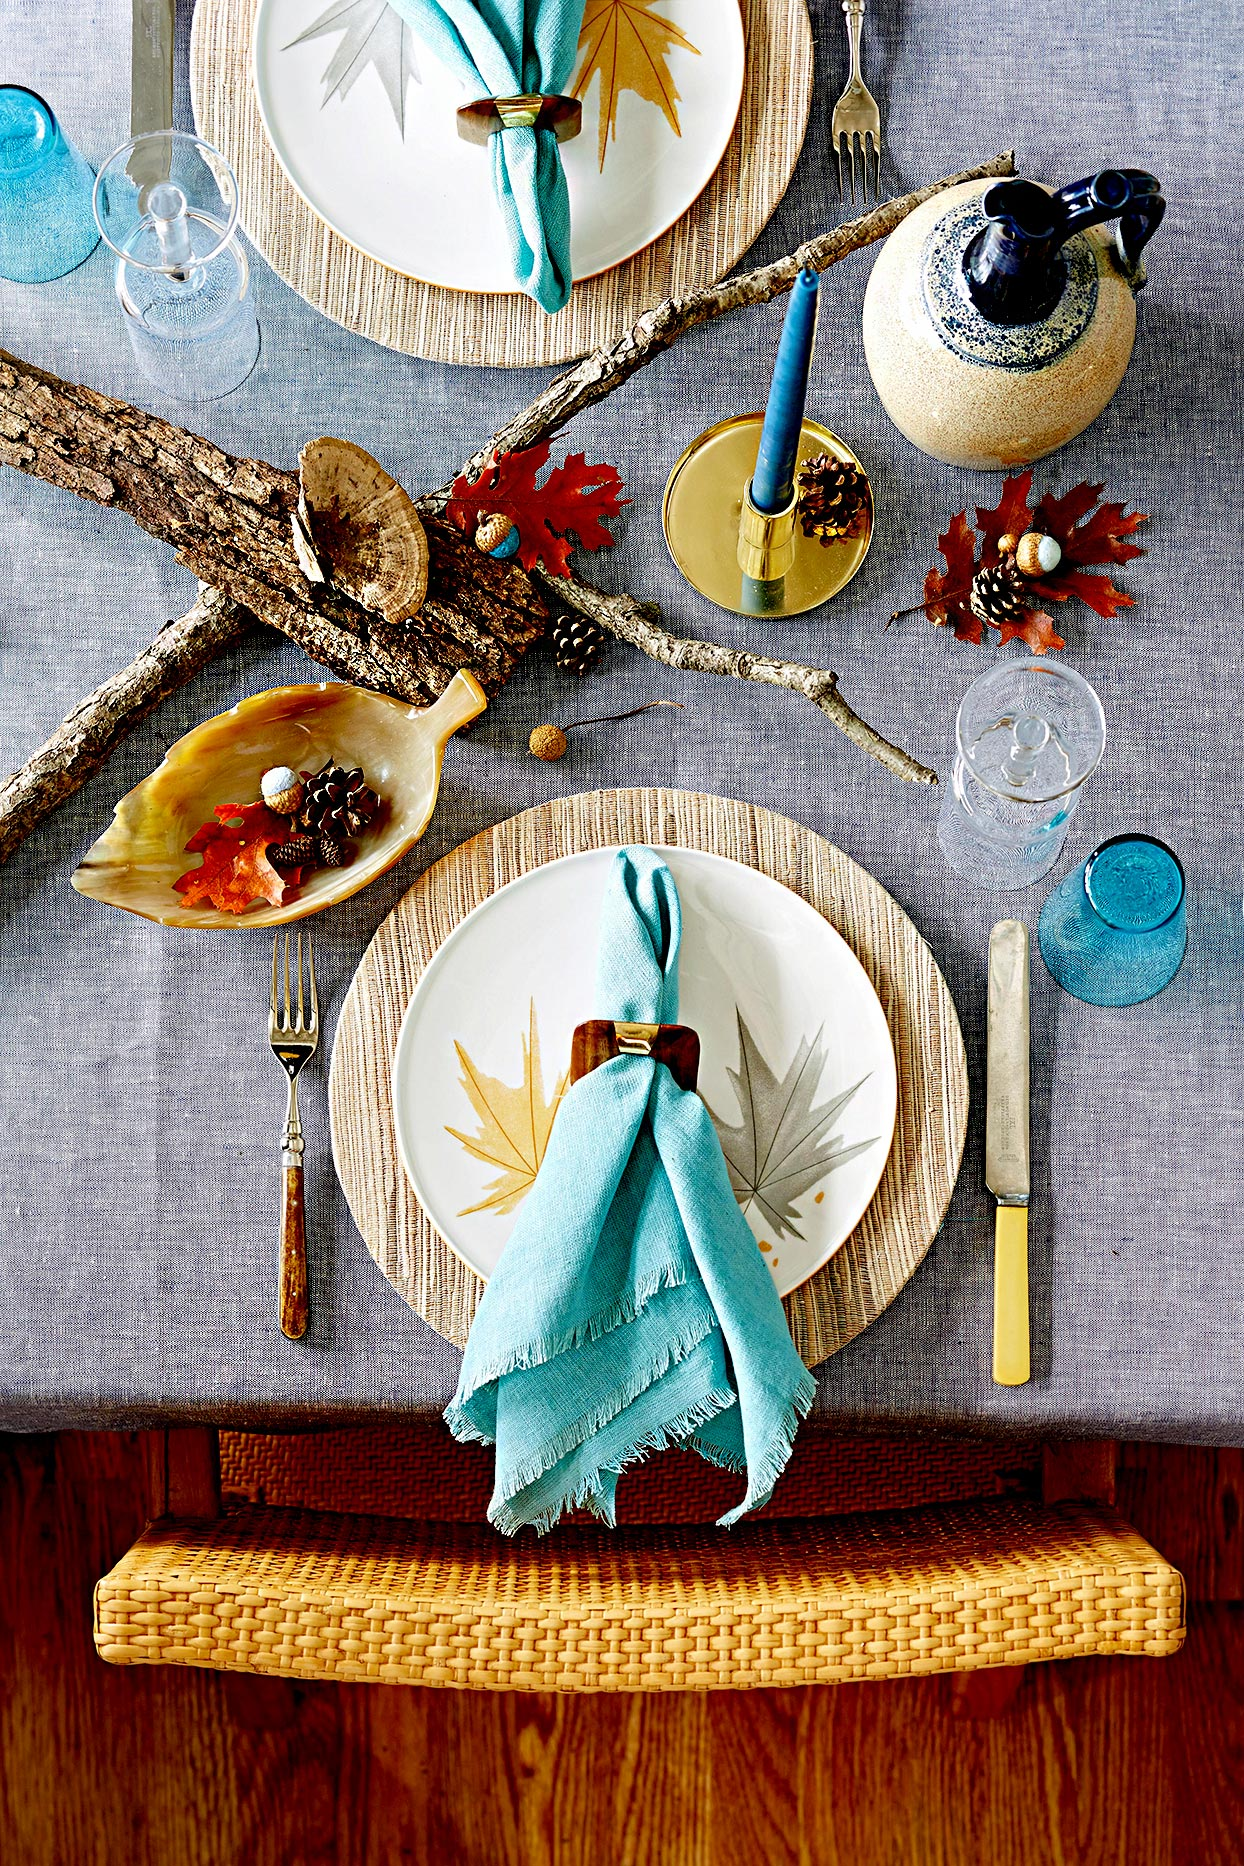 Fall table setting with leaves and branches